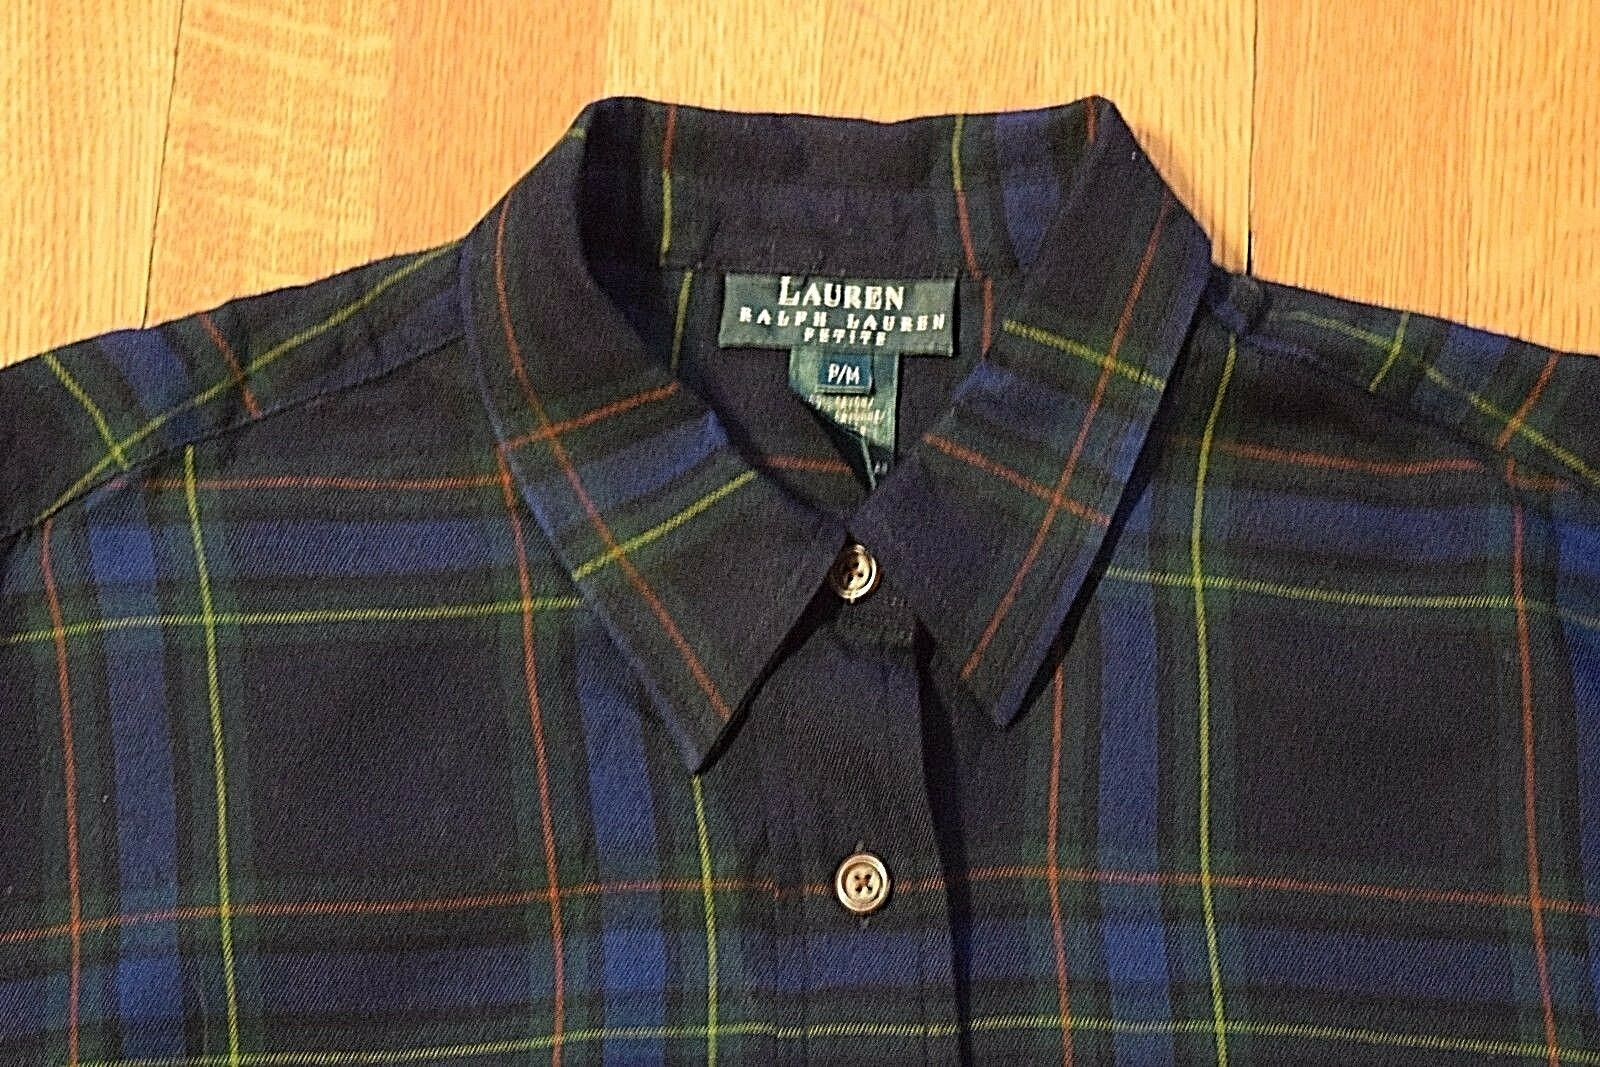 Ralph Lauren Plaid Button-Up Shirt Blouse Woherren Petite Medium Navy Blau Grün